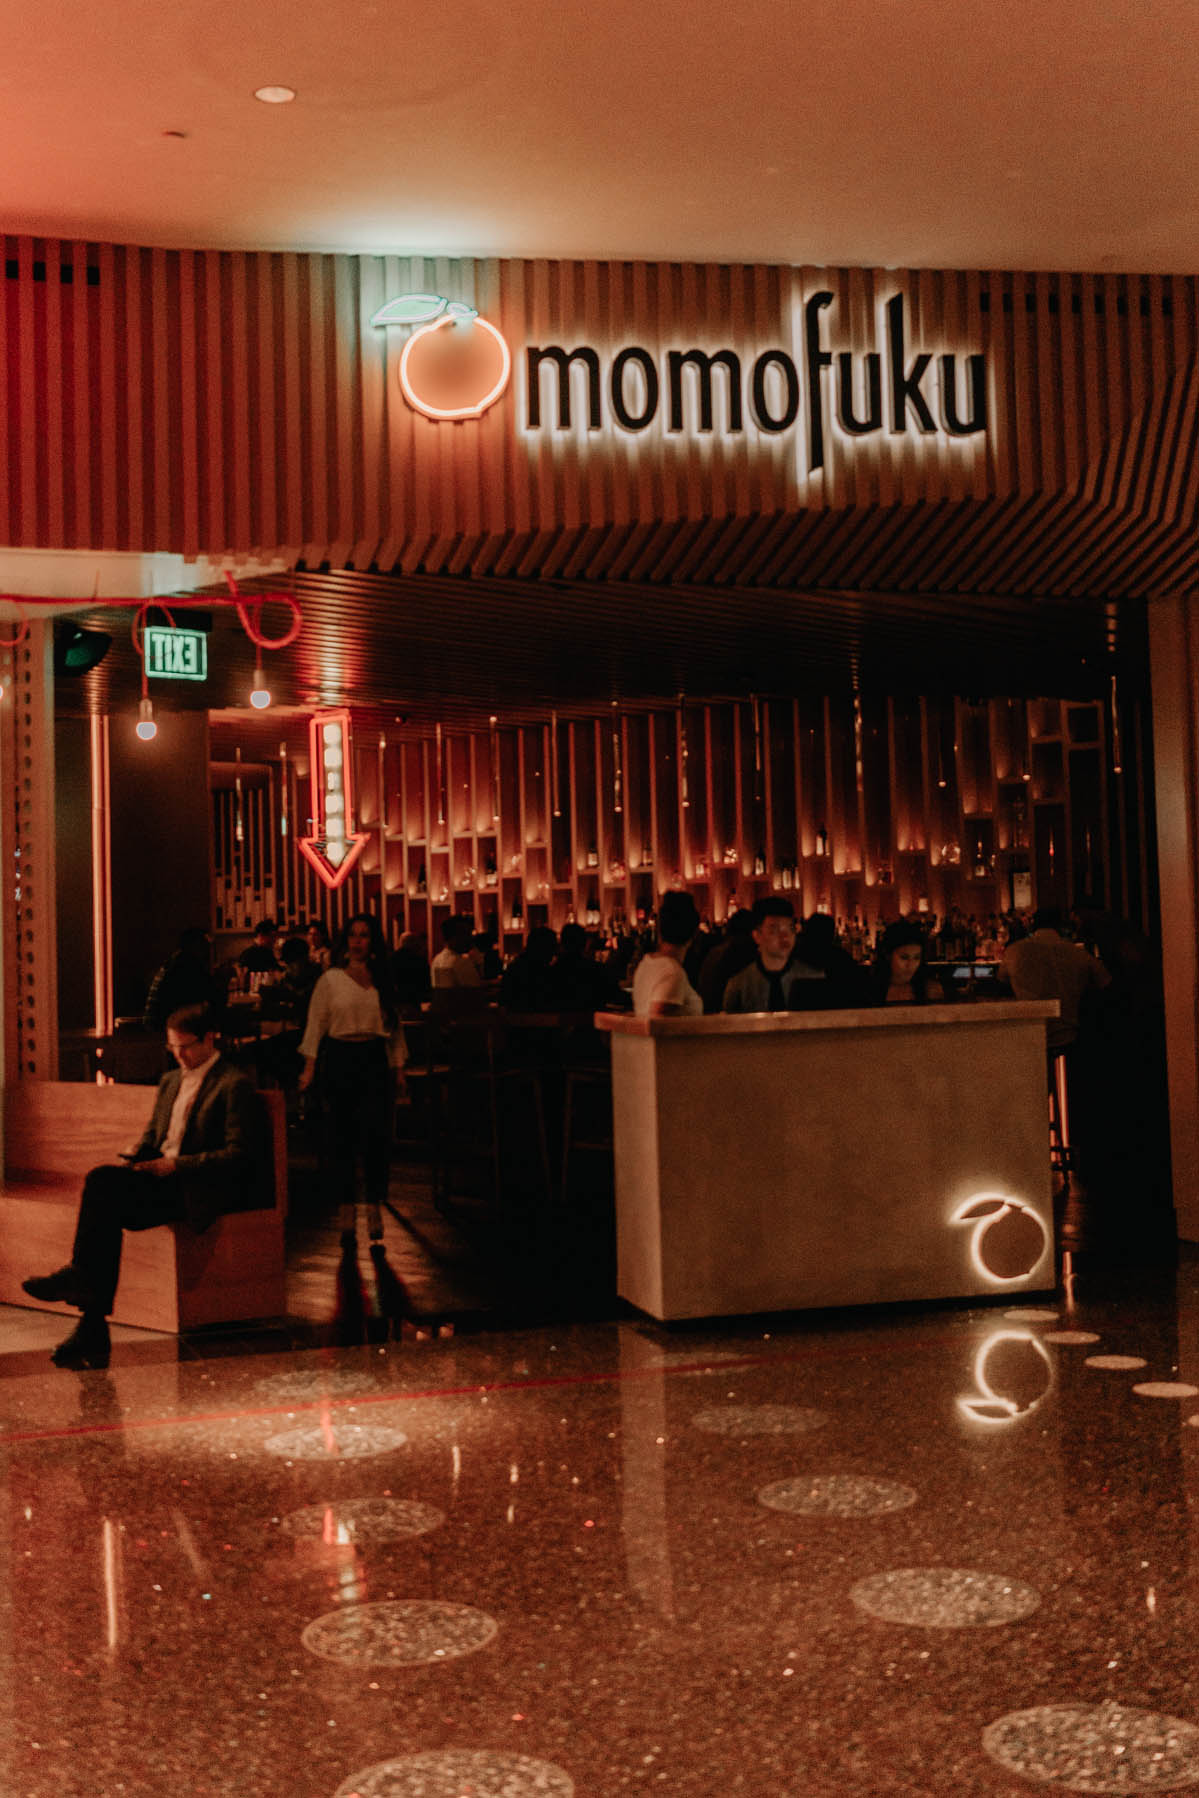 Where to eat in Las Vegas - Momofuku - Fun things to do in Las Vegas beside gamble